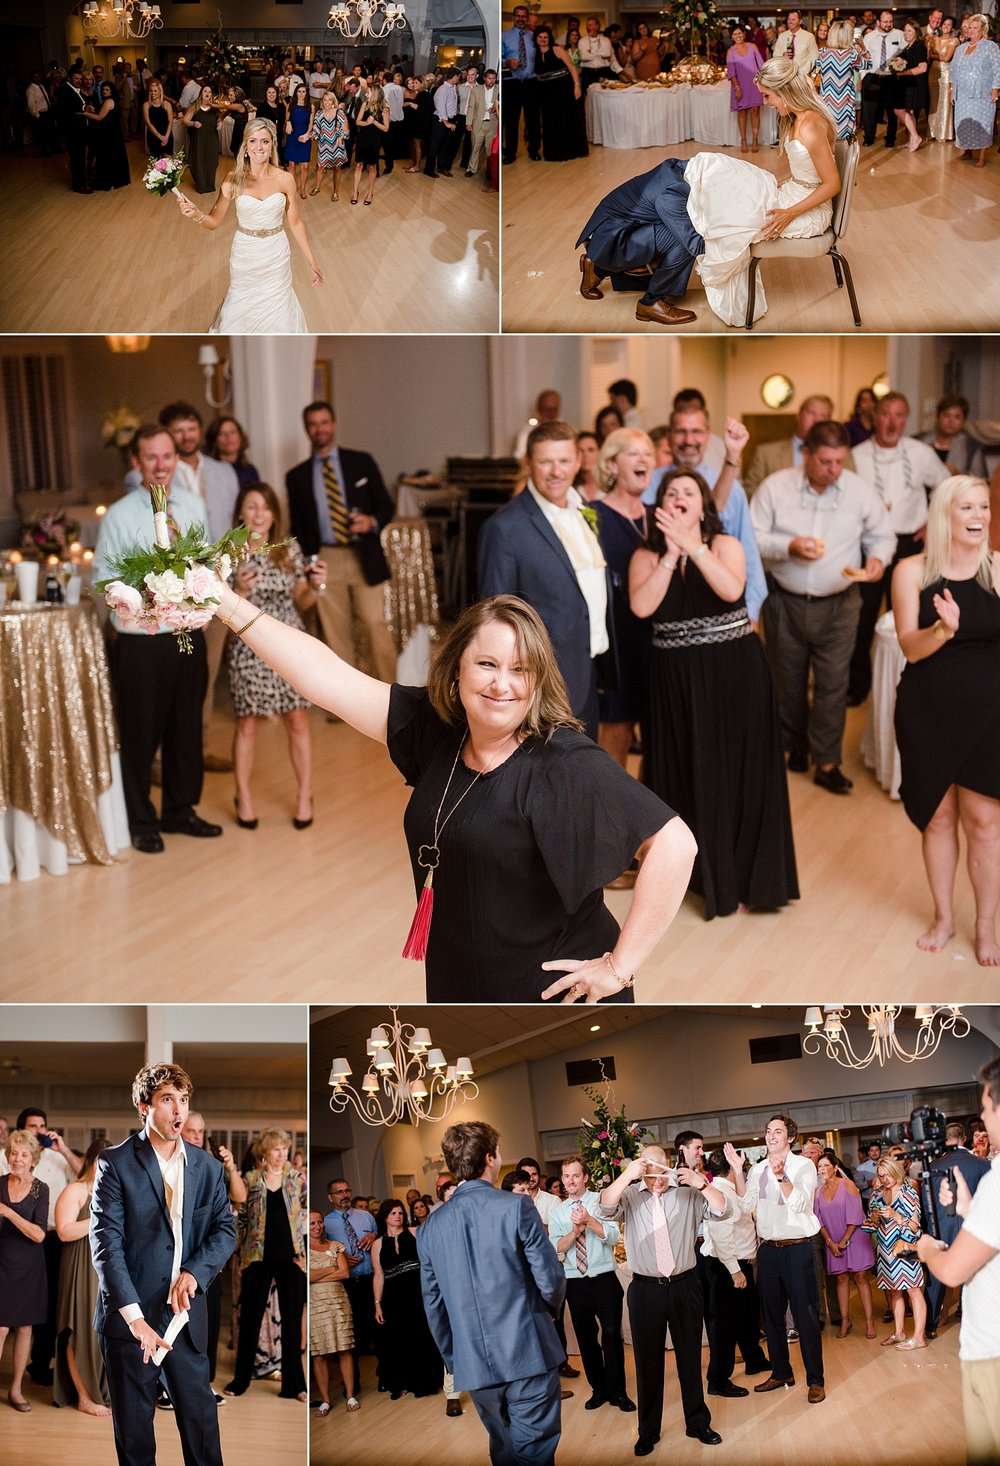 northcarolinaweddingphotographer_0119.jpg